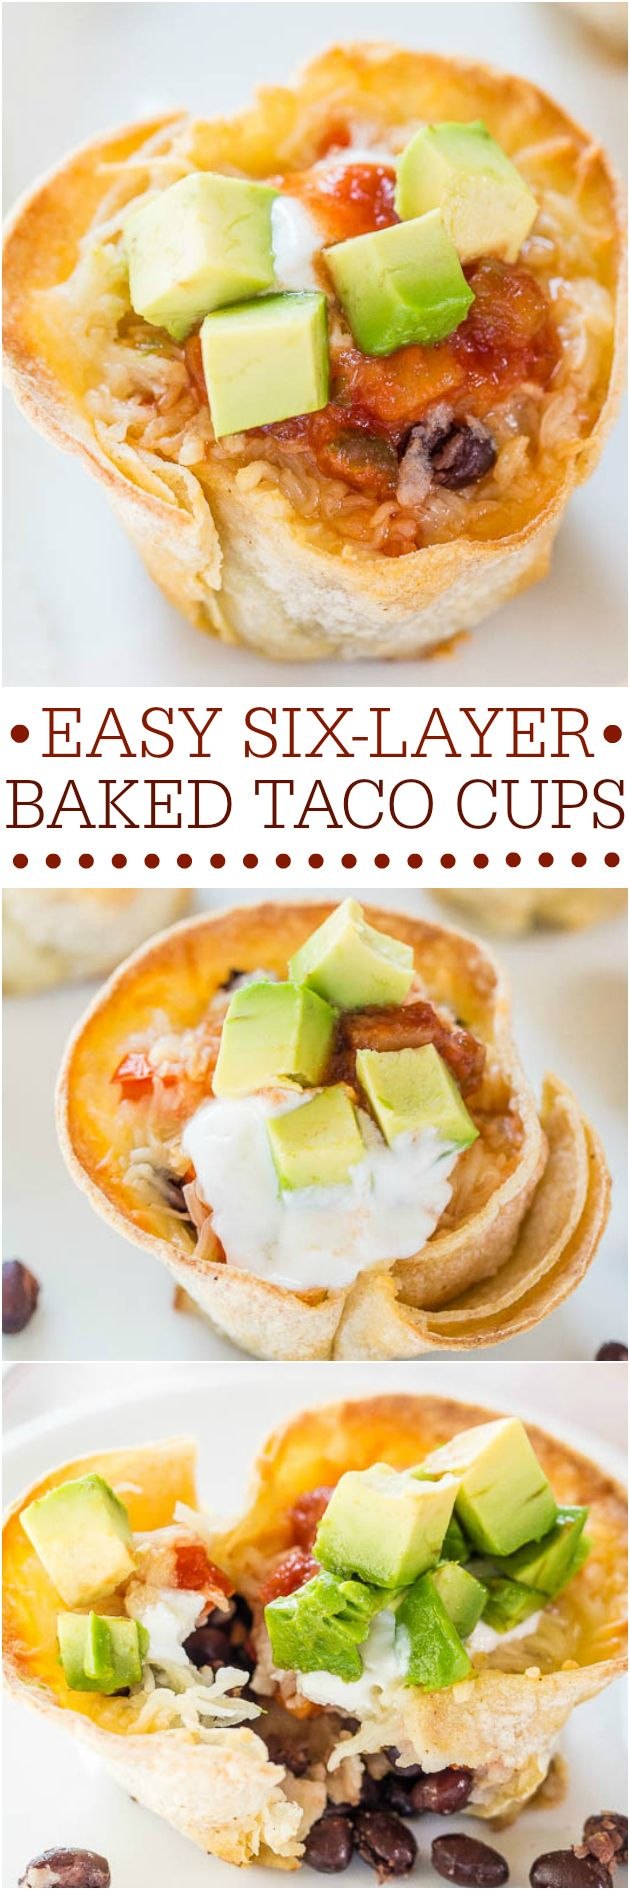 Easy Six-Layer Baked Taco Cups - Fast, easy, and accidentally healthy! Your favorite taco fixings in individually-portioned cups!! So fun for #CincoDeMayo !